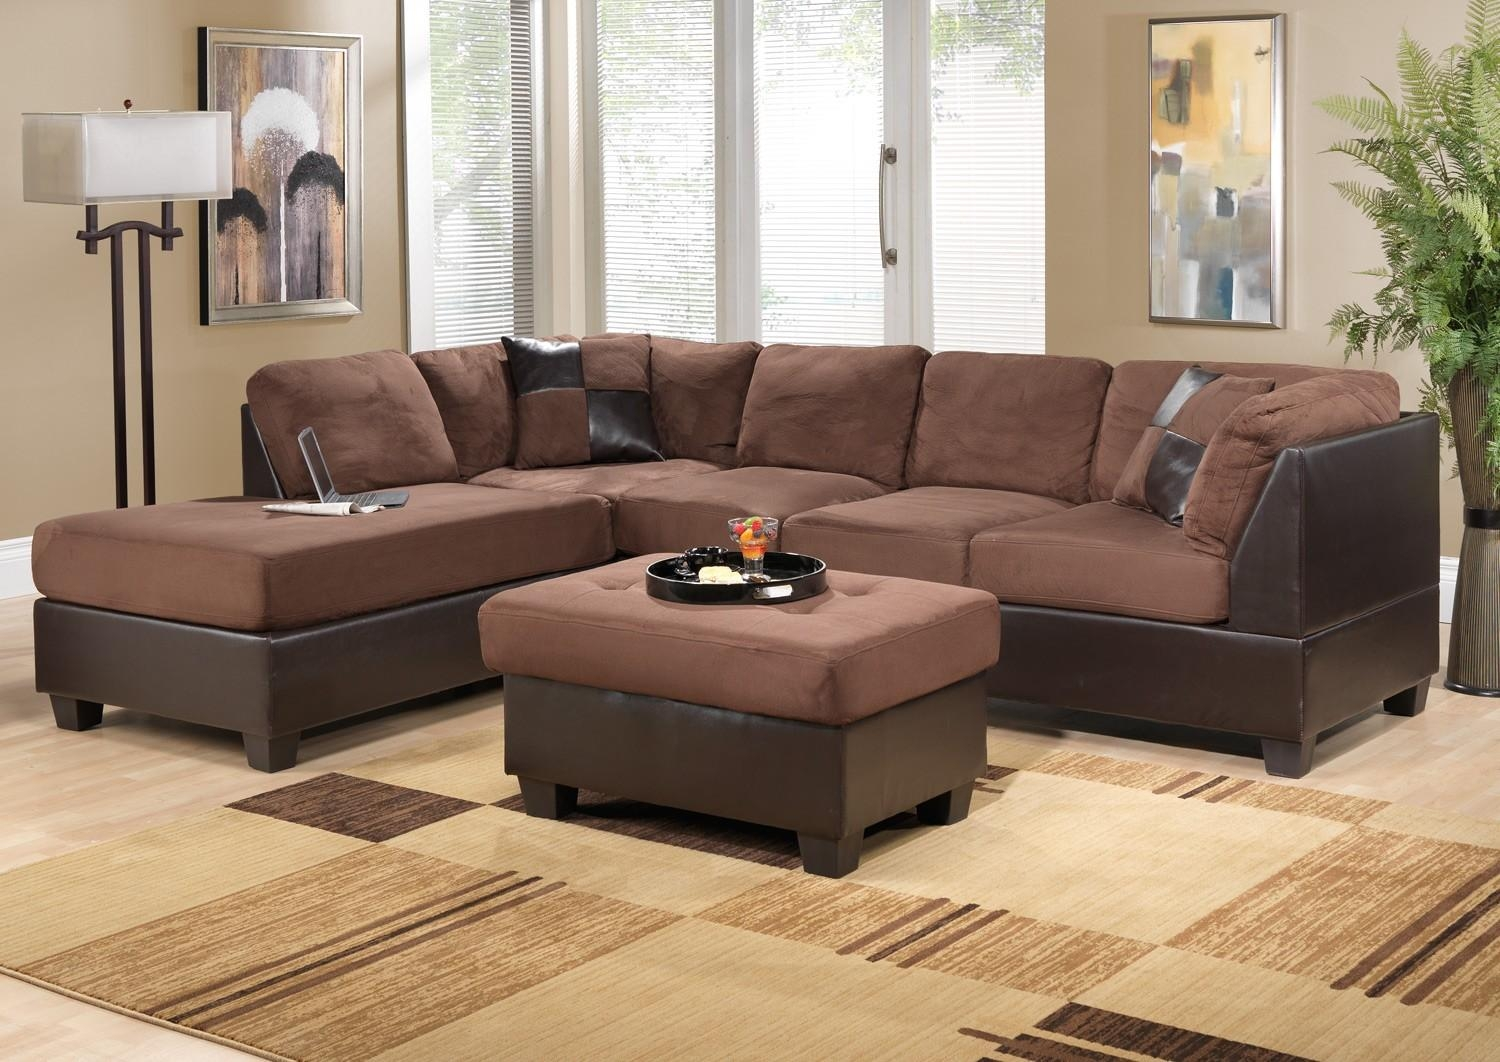 Furniture: Beauty Sofa In Living Room Living Room Furniture Within Living Room Sofas (Image 5 of 20)